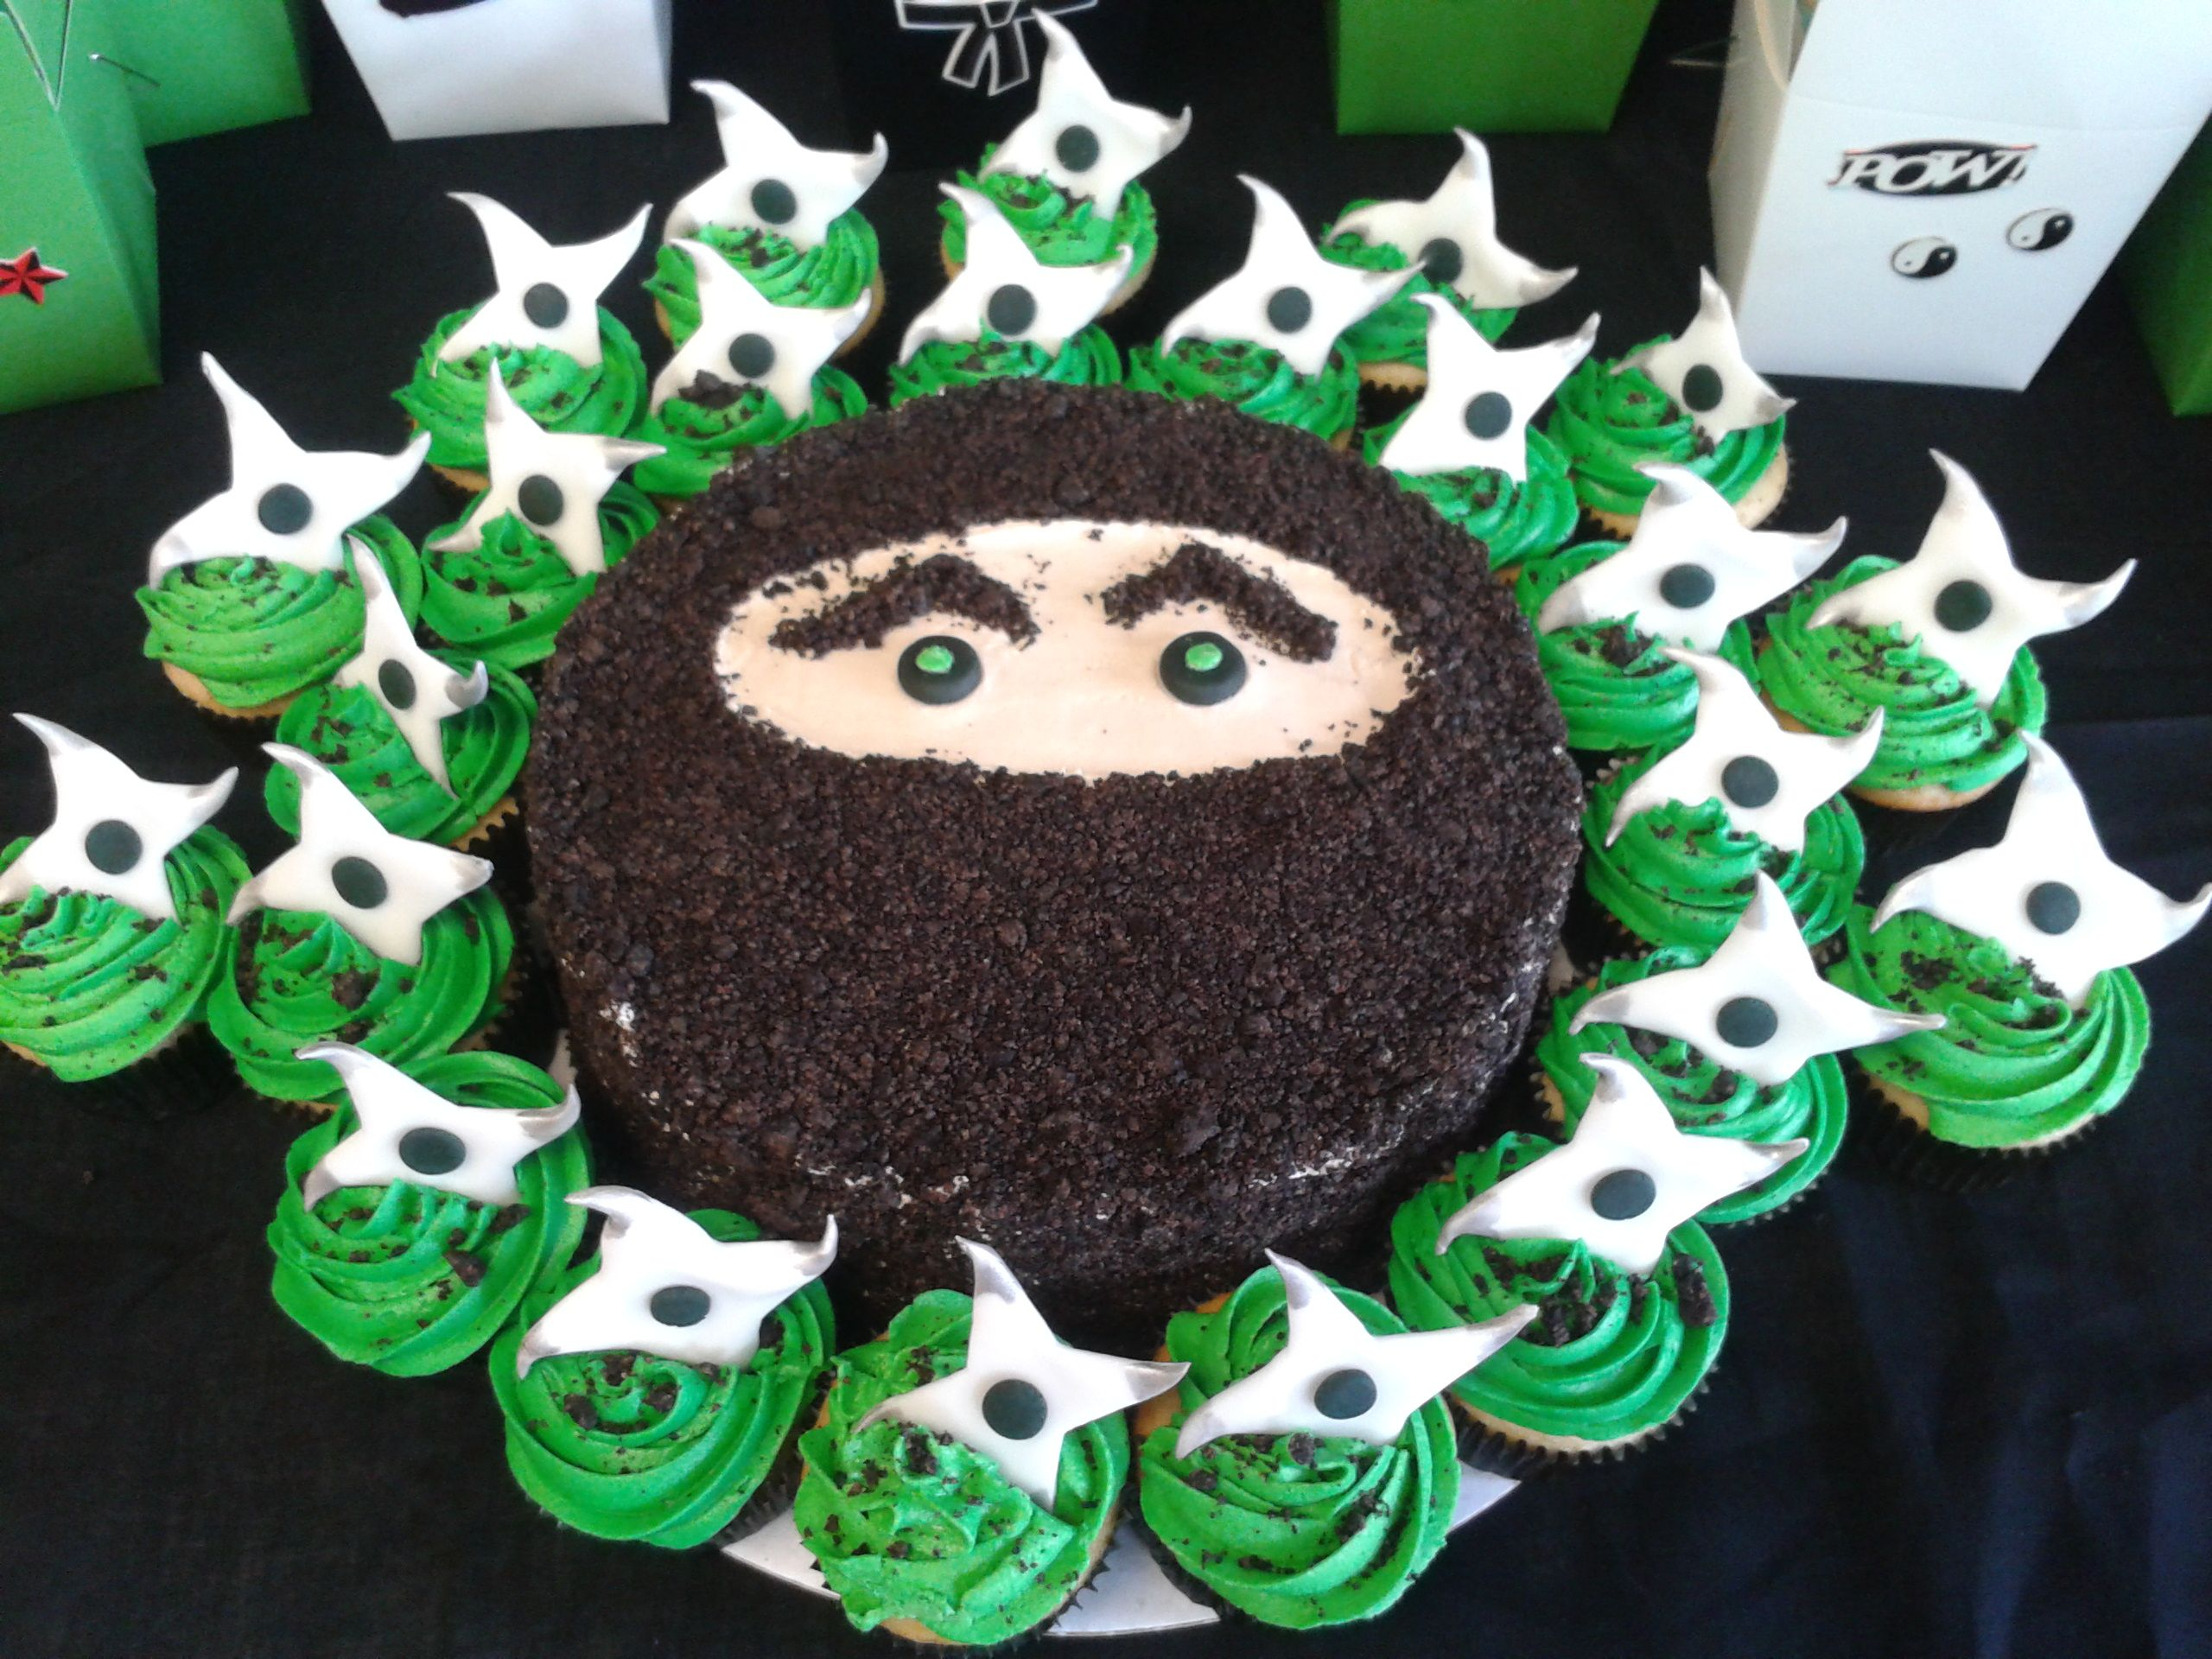 Ninja cake with ninja star cupcakes! Ninja made with crushed